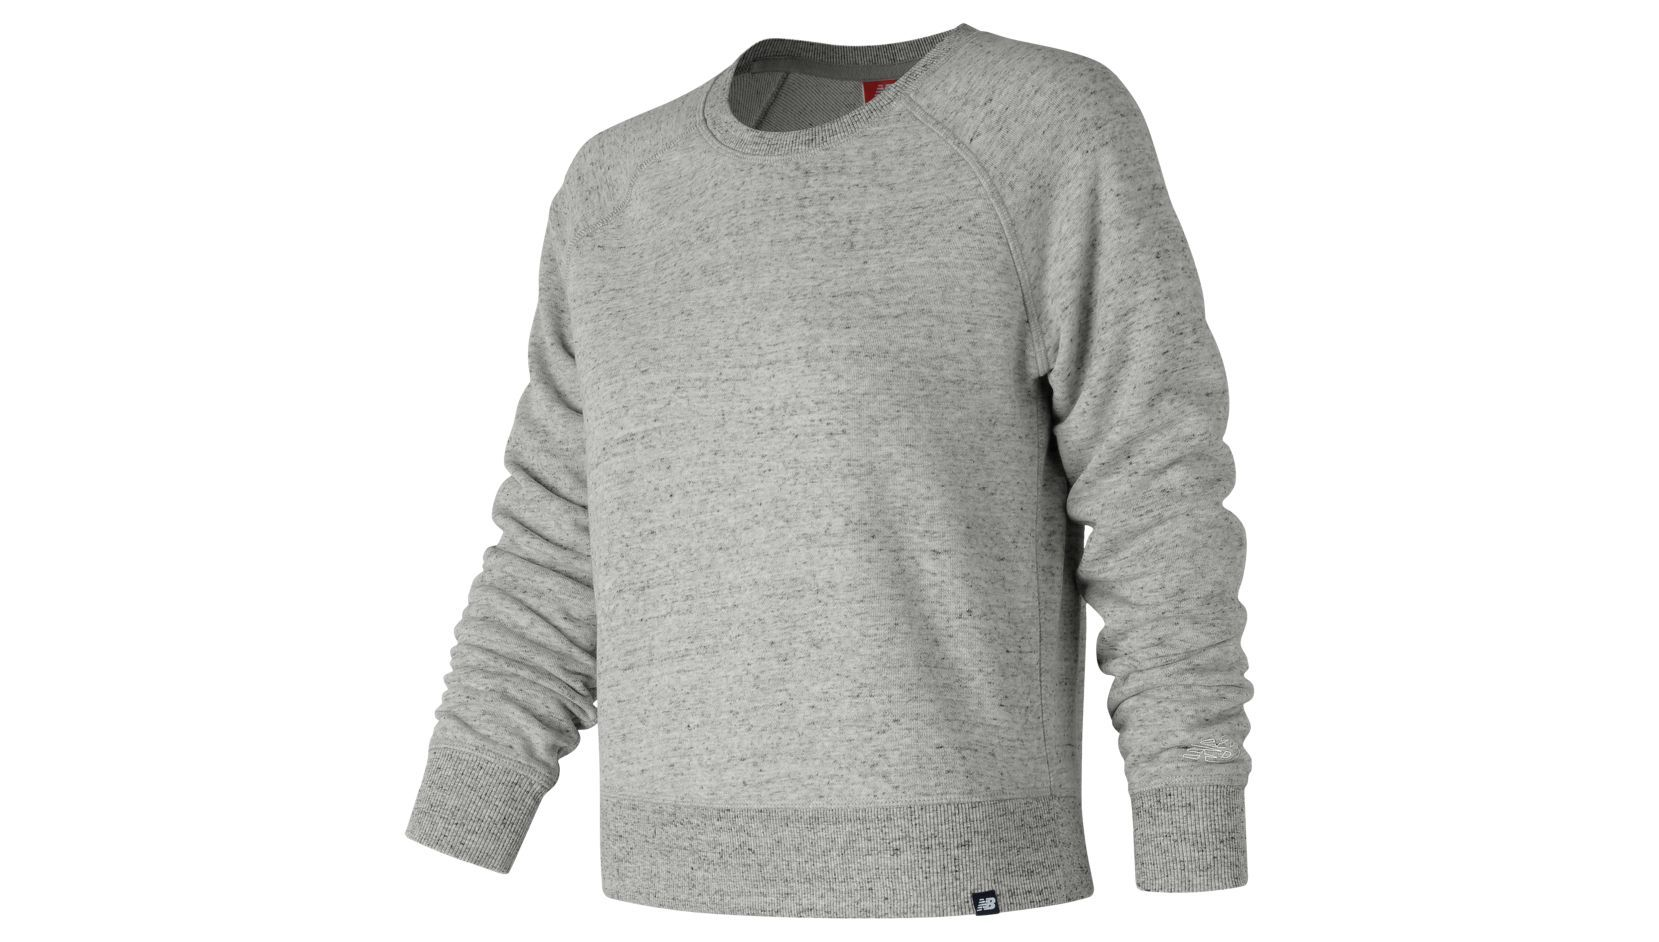 ESSENTIALS FT CREW heathered crew neck tee